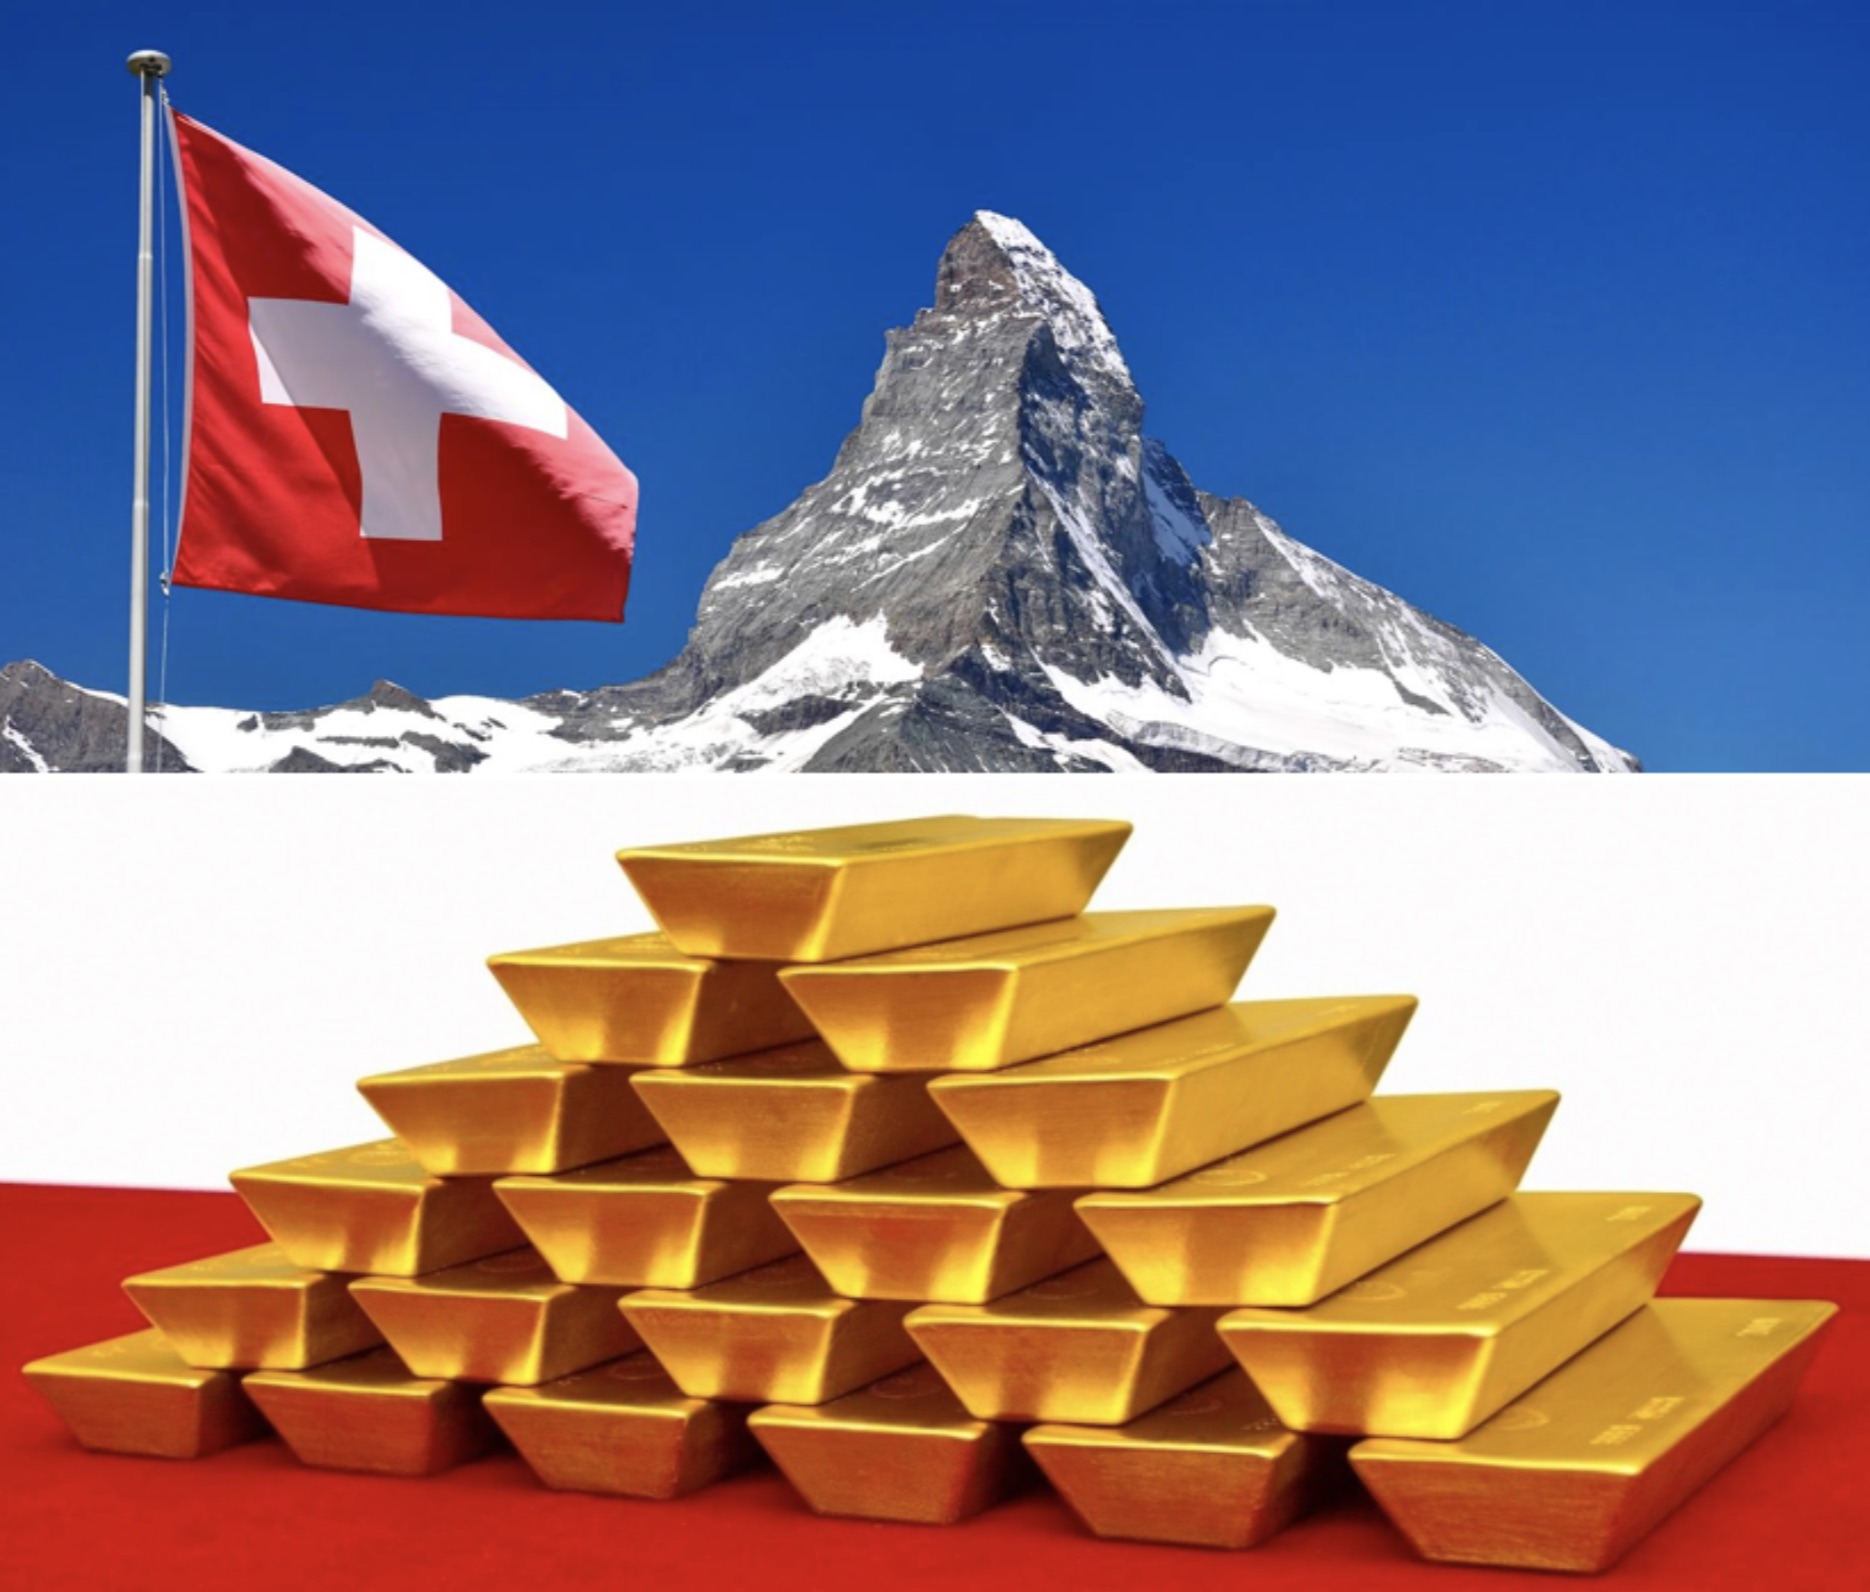 King World News - MAJOR ALERT: Greyerz Says One Of The Two Largest Banks In Switzerland Just Refused To Hand Over A Clients' Physical Gold. Even More Surprising Is What The Client Did Next